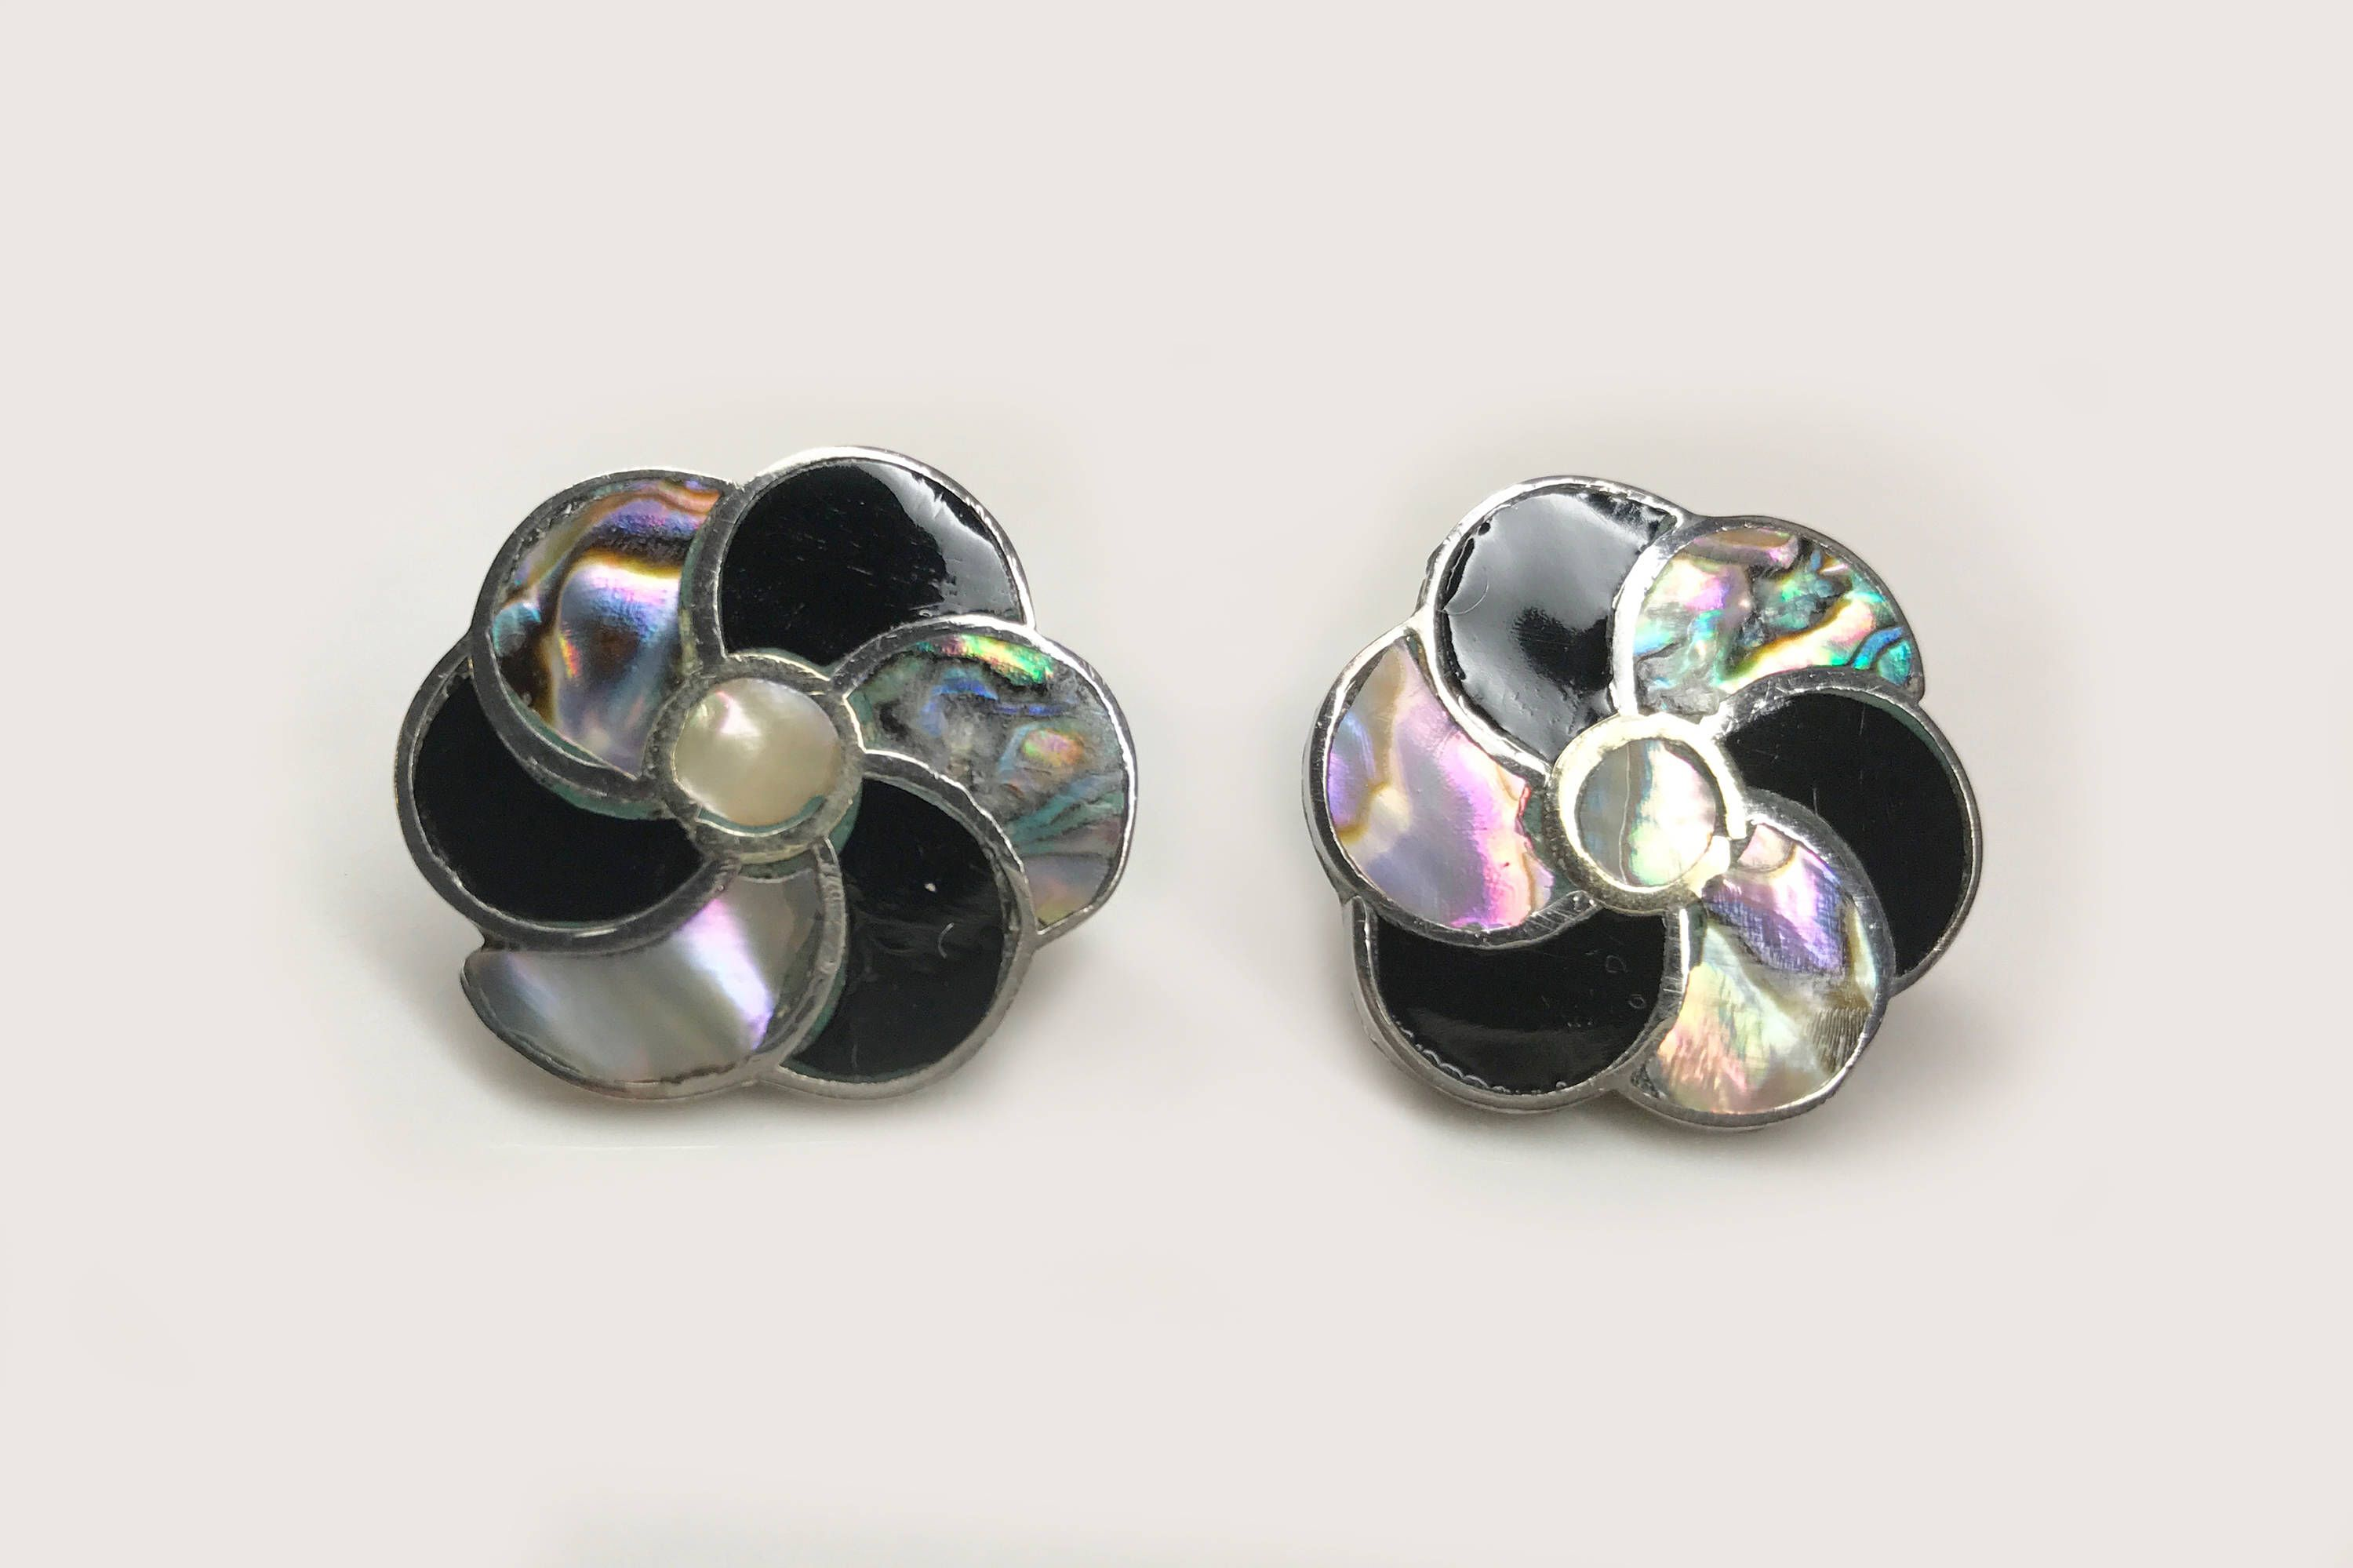 se jai khun stud beautiful accents inlaid seashell earrings artisan cute comes heart sq inlay abalone stone aeravida this silver designed round in oval square details which and piece products trendy